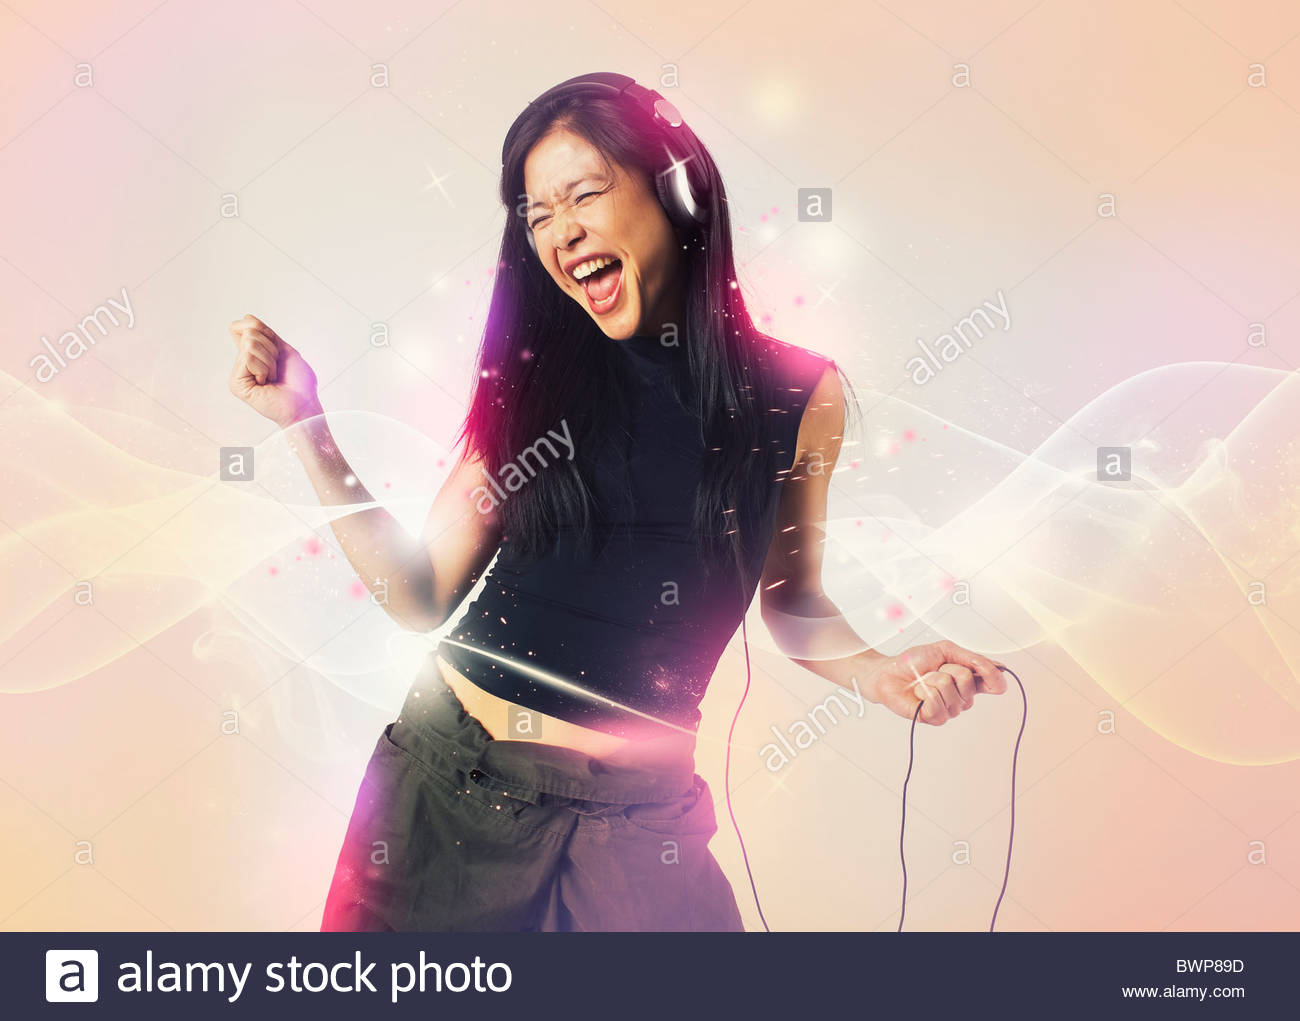 Happy woman chante et danse Photo Stock